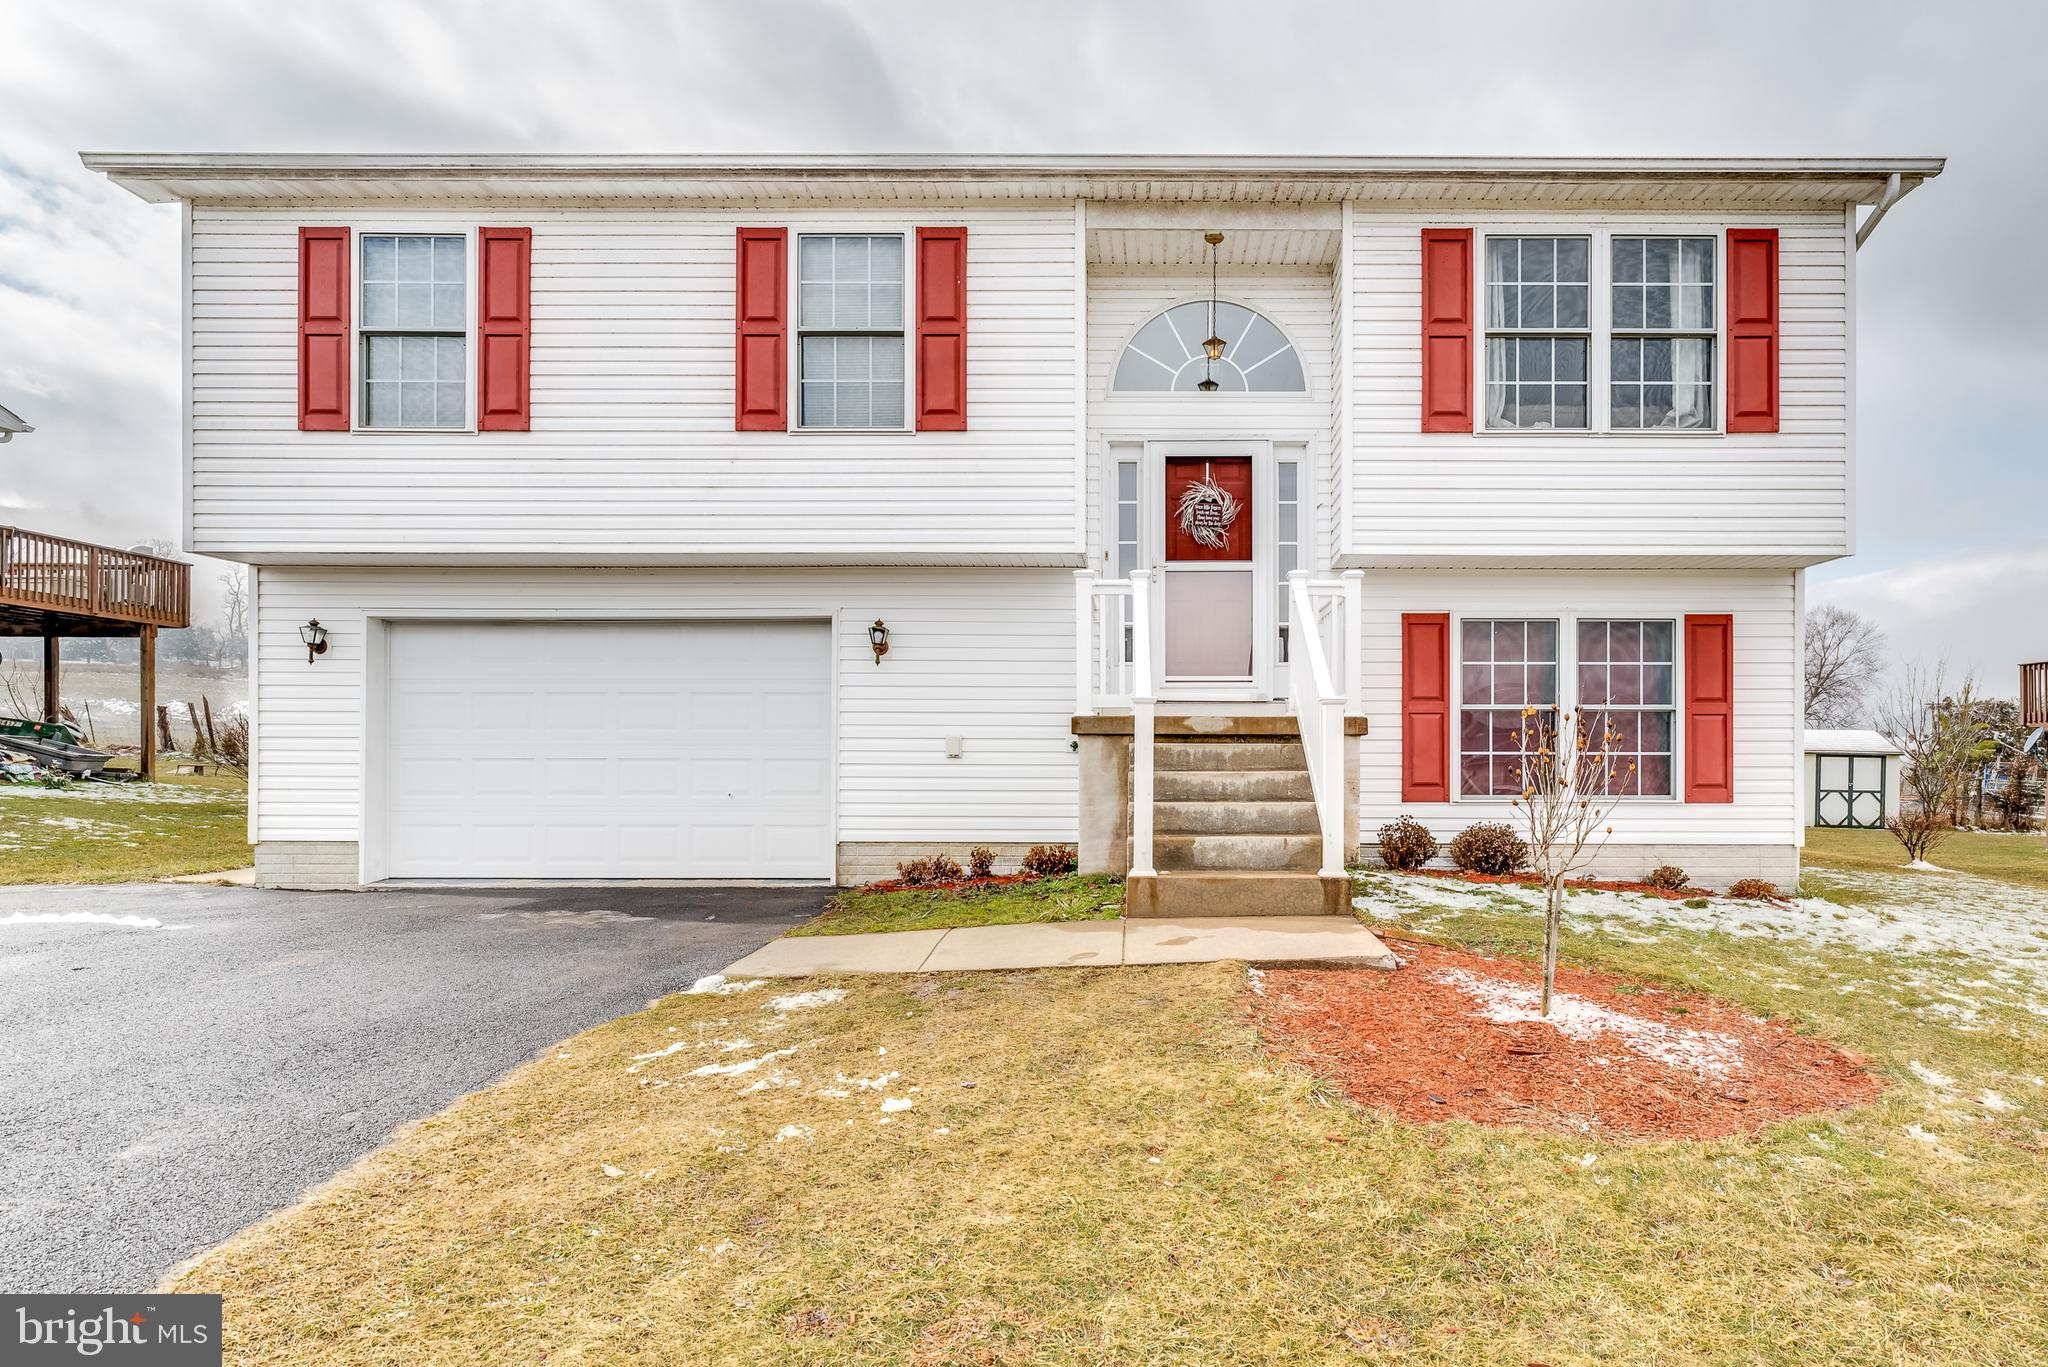 109 MULBERRY LANE, WARDENSVILLE, WV 26851